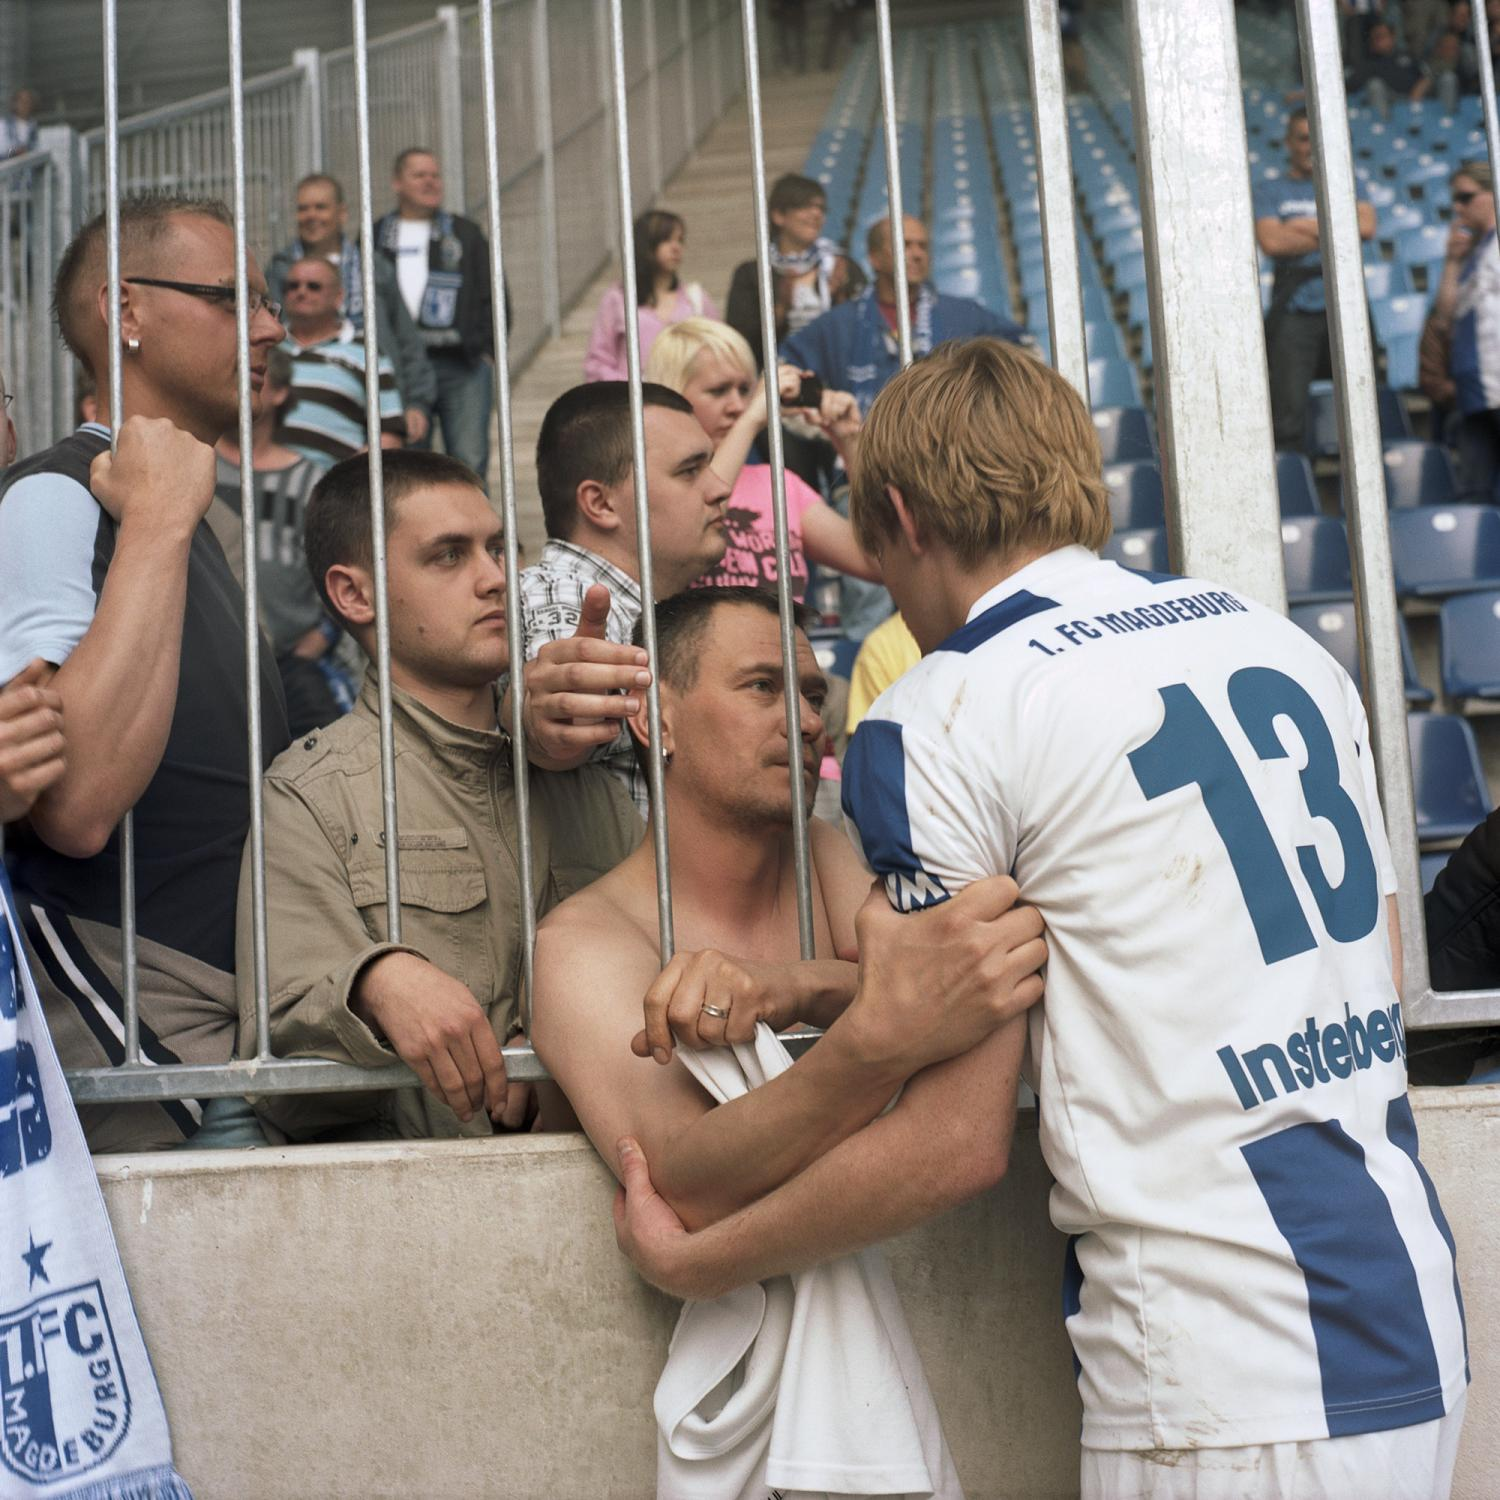 The last day of the season 2009/2010, a supporter is holding Moritz Instenberg through the gate, in the stadium in Magdeburg. He is the youngest of the team and has been the best player in the last months, being the only one the supporters still believe in, after an overall disappointing season.